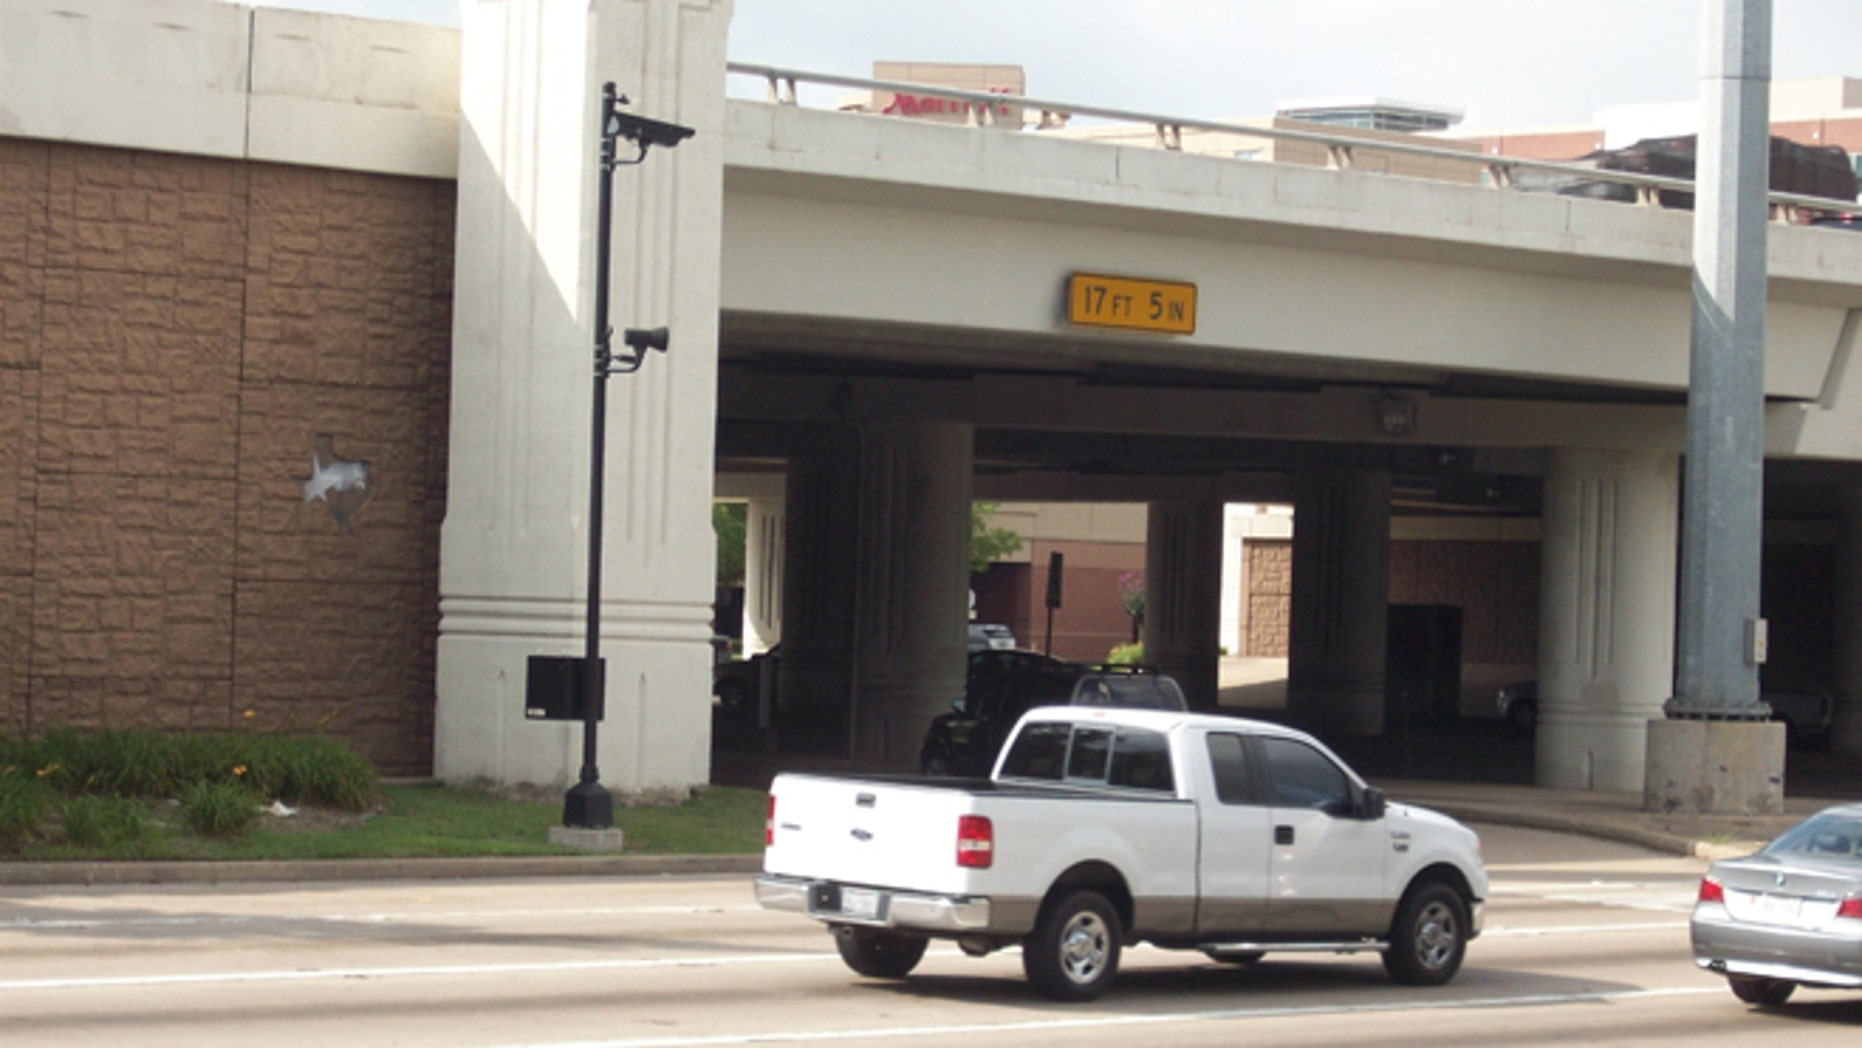 June 12, 2013: Helwig Van Der Grinten, who has never received a red-light ticket from a camera like this one at U.S. Highway 59 at Texas Highway 6, said local lawmakers in Texas are 'turning a deaf ear' to residents of Sugar Land. (Courtesy: Helwig Van Der Grinten)